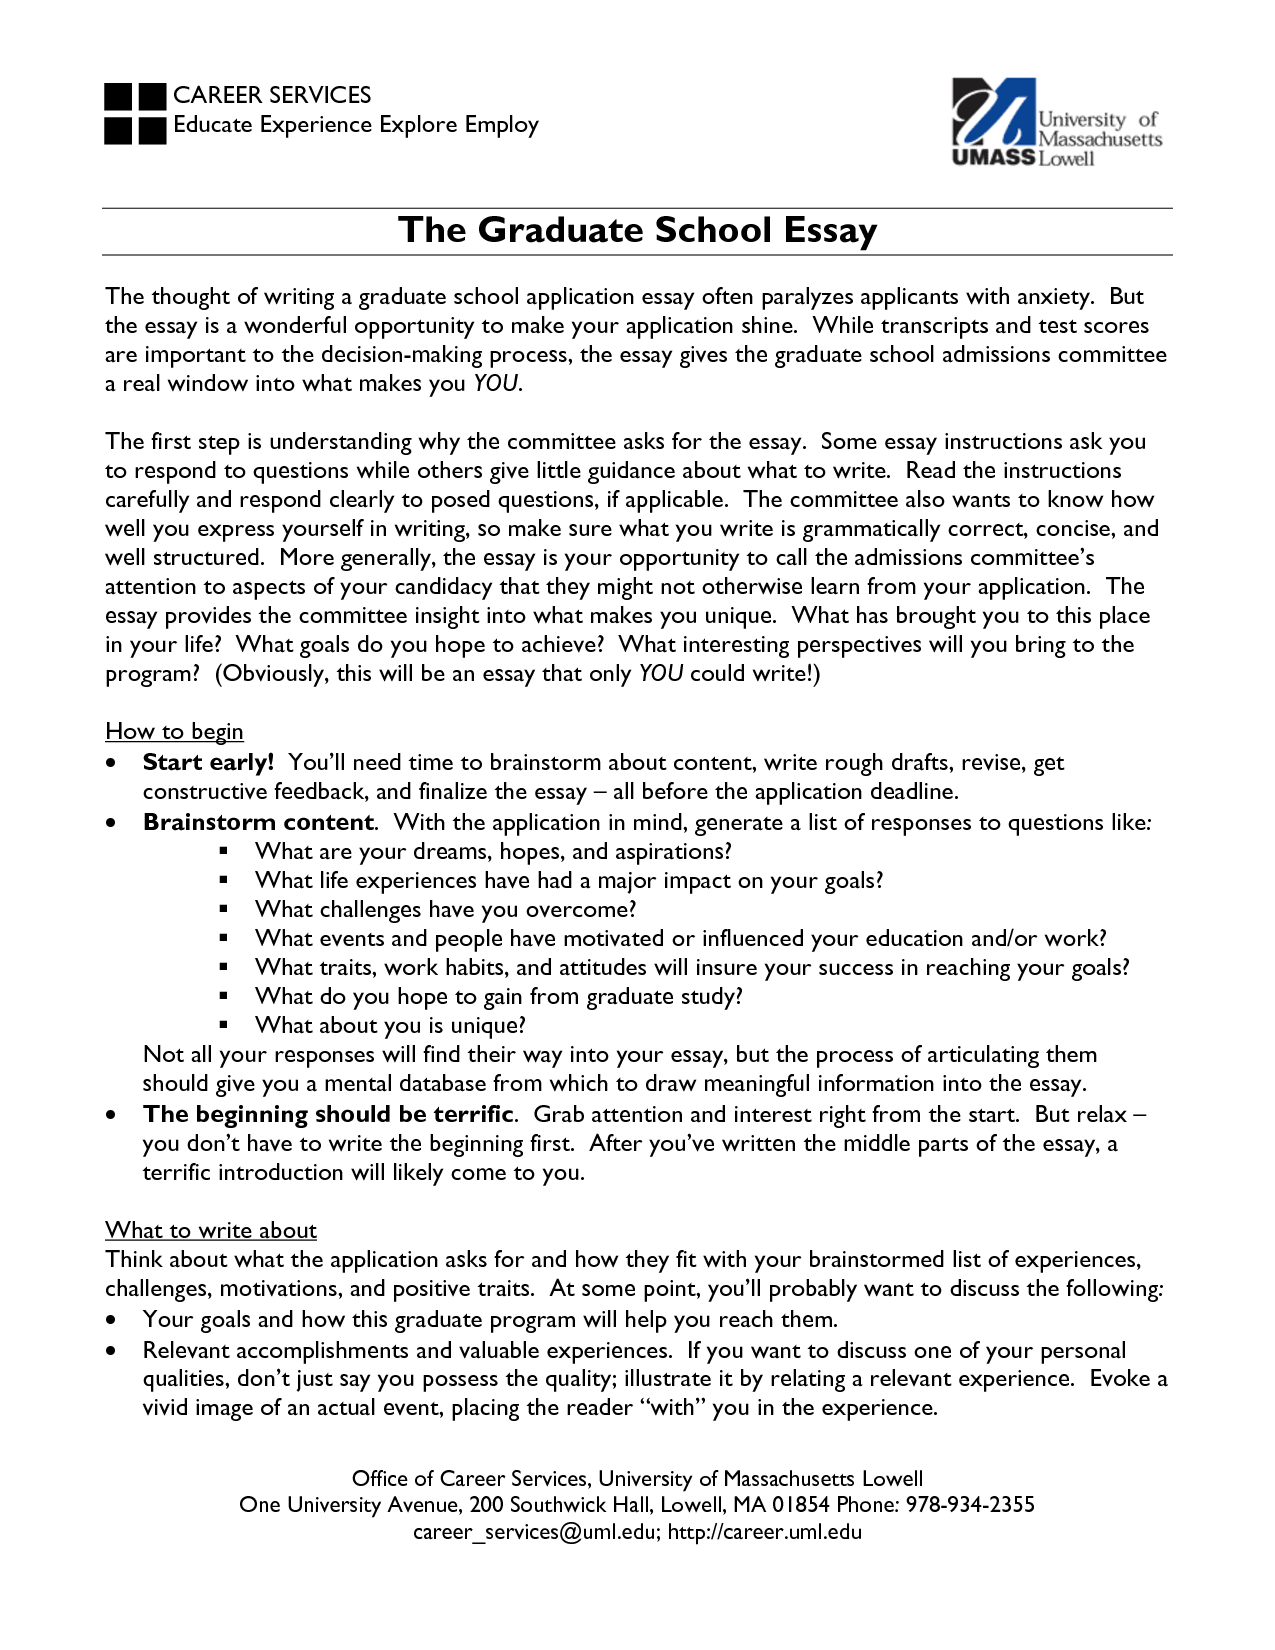 Grad school application essay tips